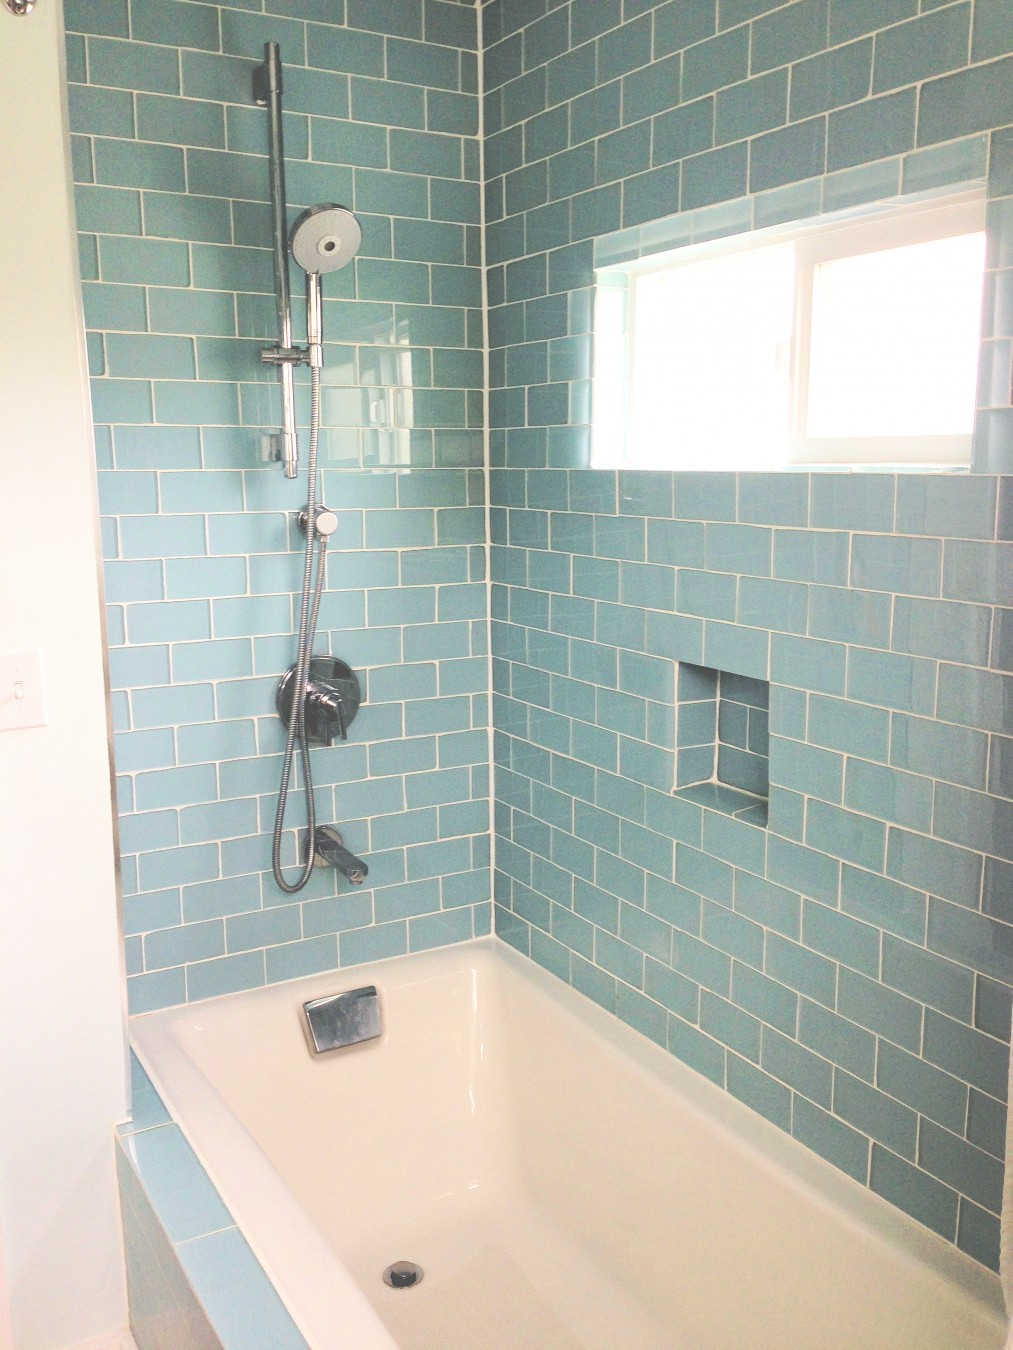 walls-vapor-glass-subway-tile-4x12-subway-tile-outlet-using-4x12-subway-tile-white-to-make-clean-and-simple-bathroom-design-4x12-subway-tile-backsplash-4x12-glass-tile-backsplash-4x12-1013x1